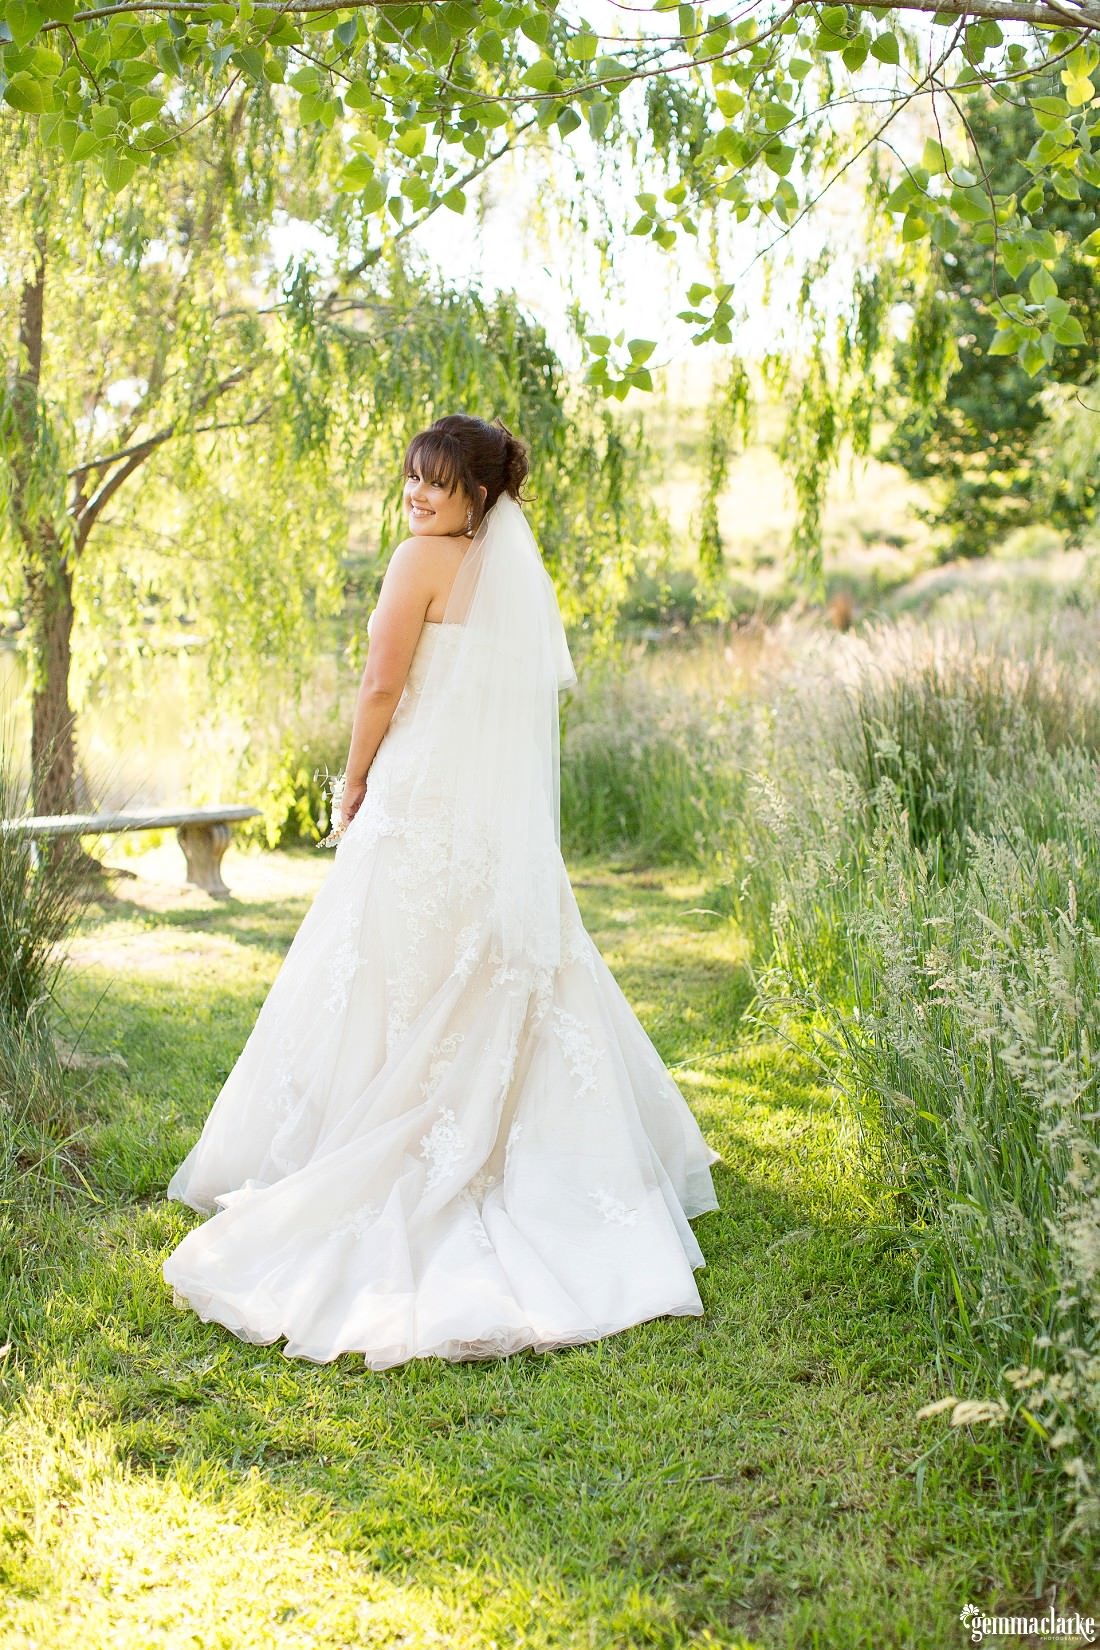 gemmaclarkephotography_mali-brae-wedding_southern-highlands-wedding_tahnae-and-james_0073